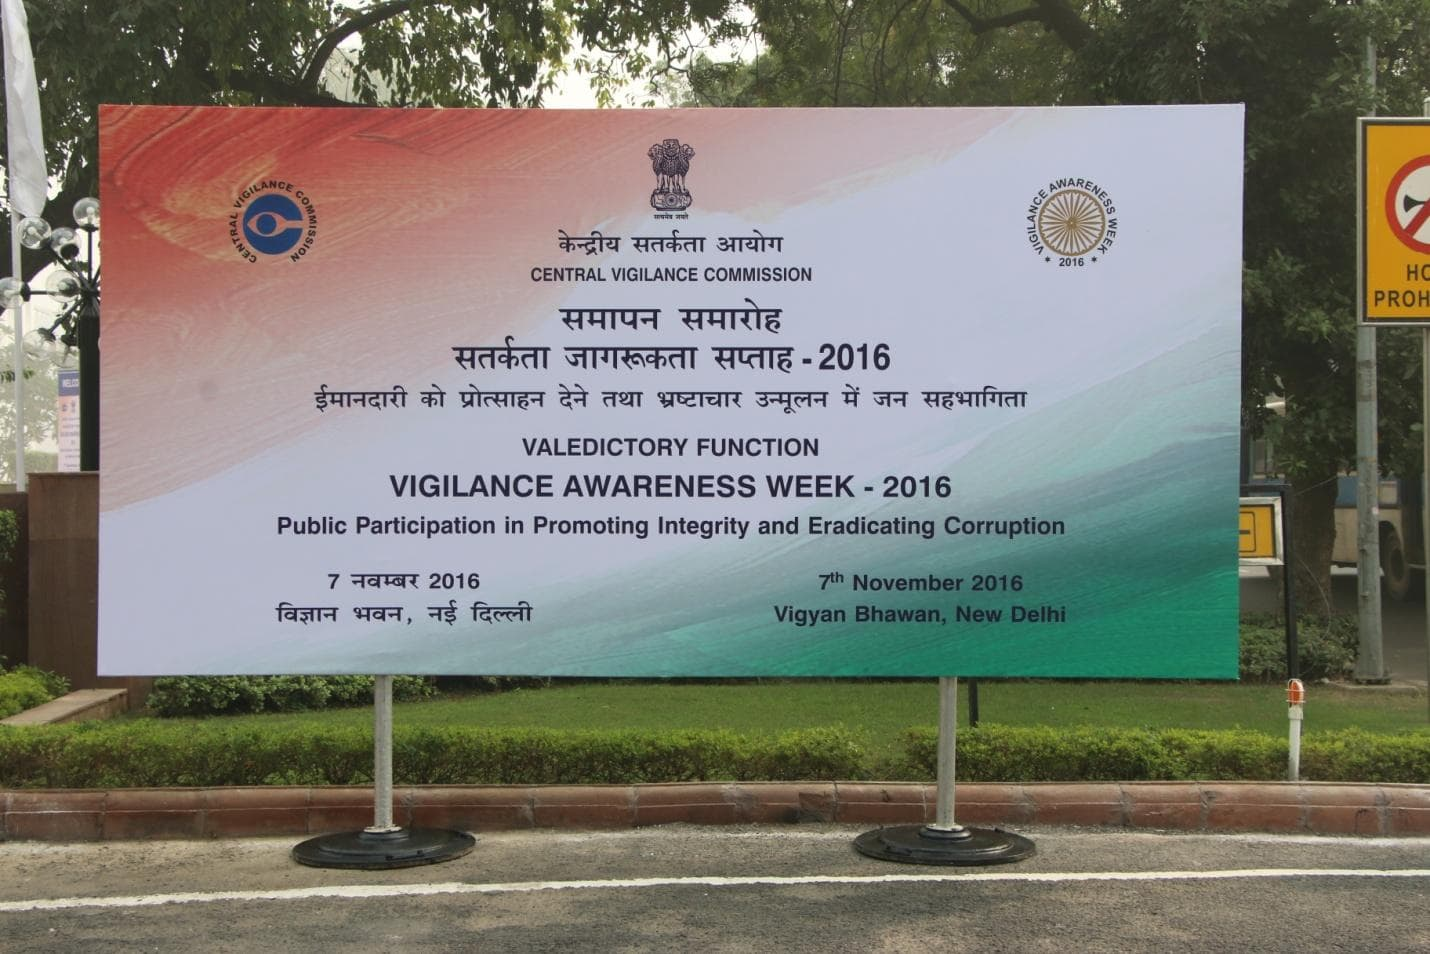 Valedicition Function VIGILANCE AWARENESS WEEK-2016 photo 1